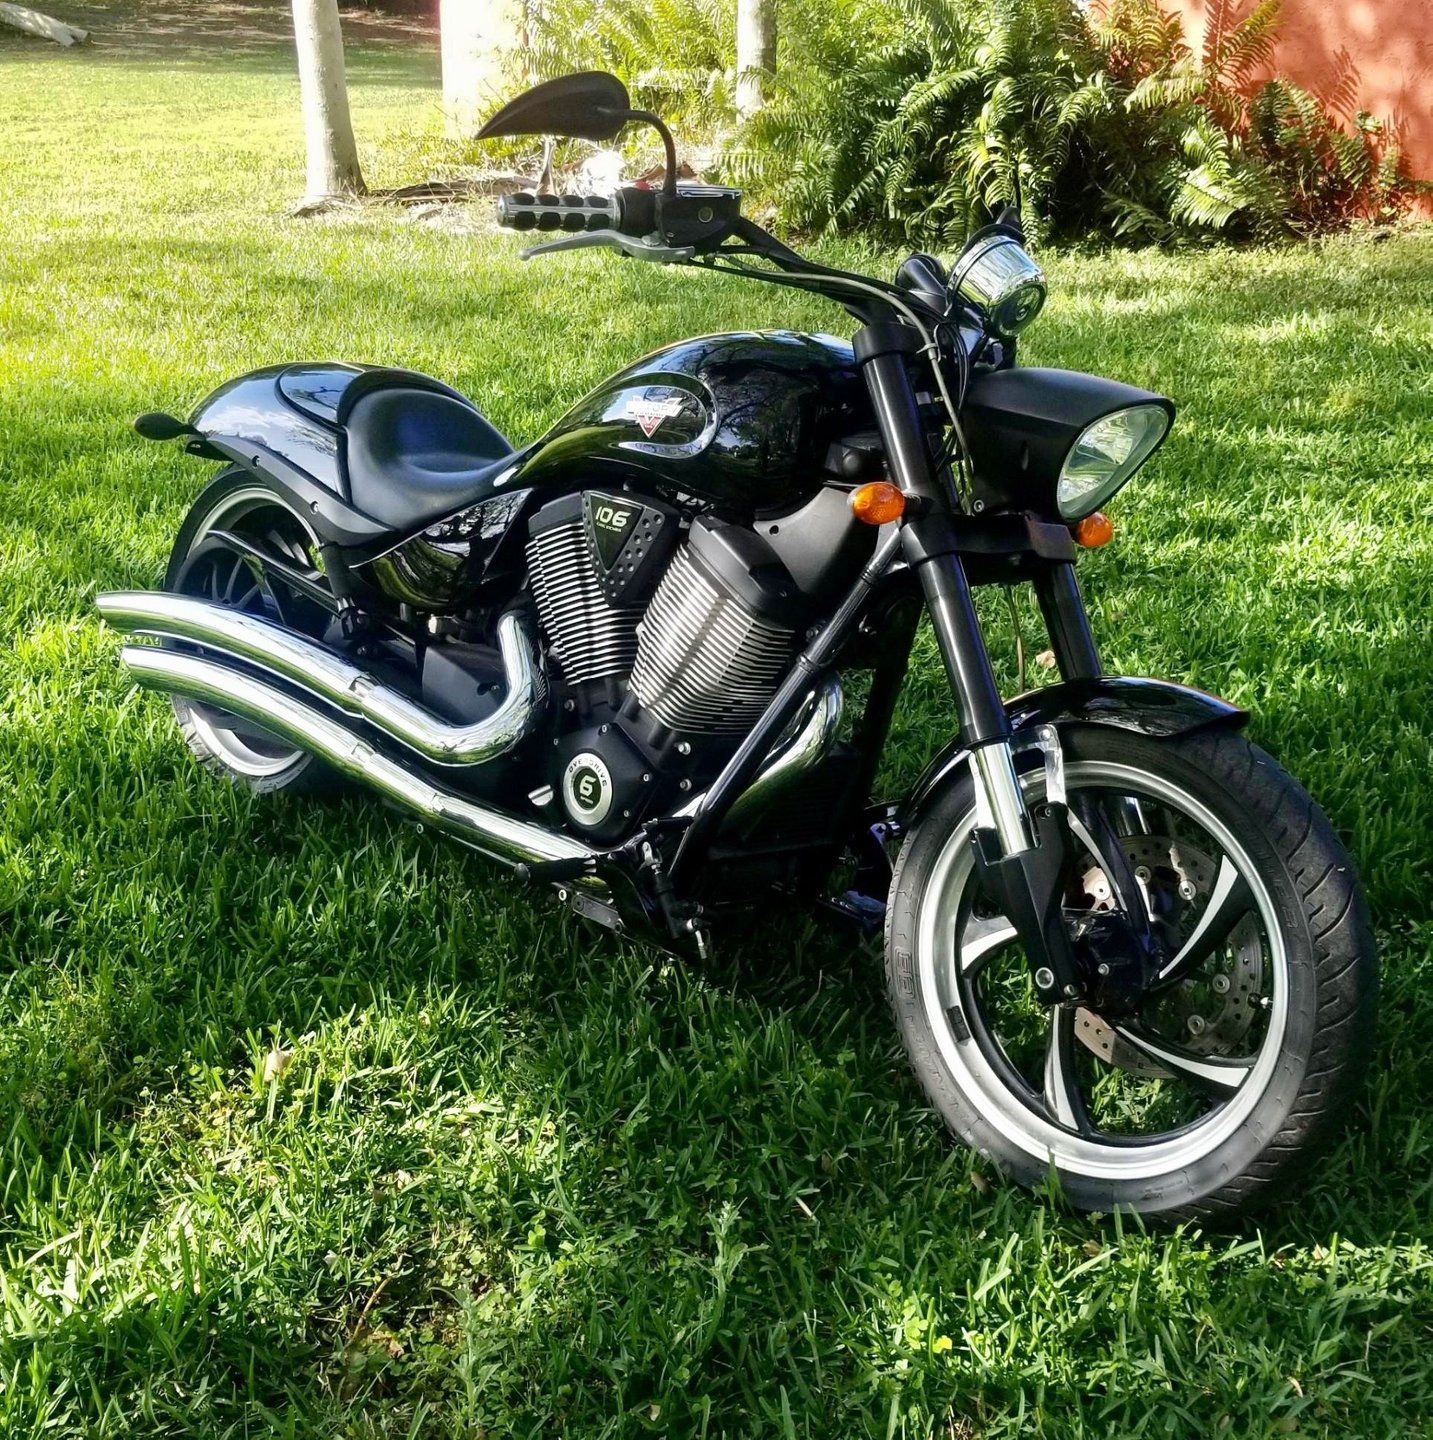 2013 victory hammer 8 ball motorcycle